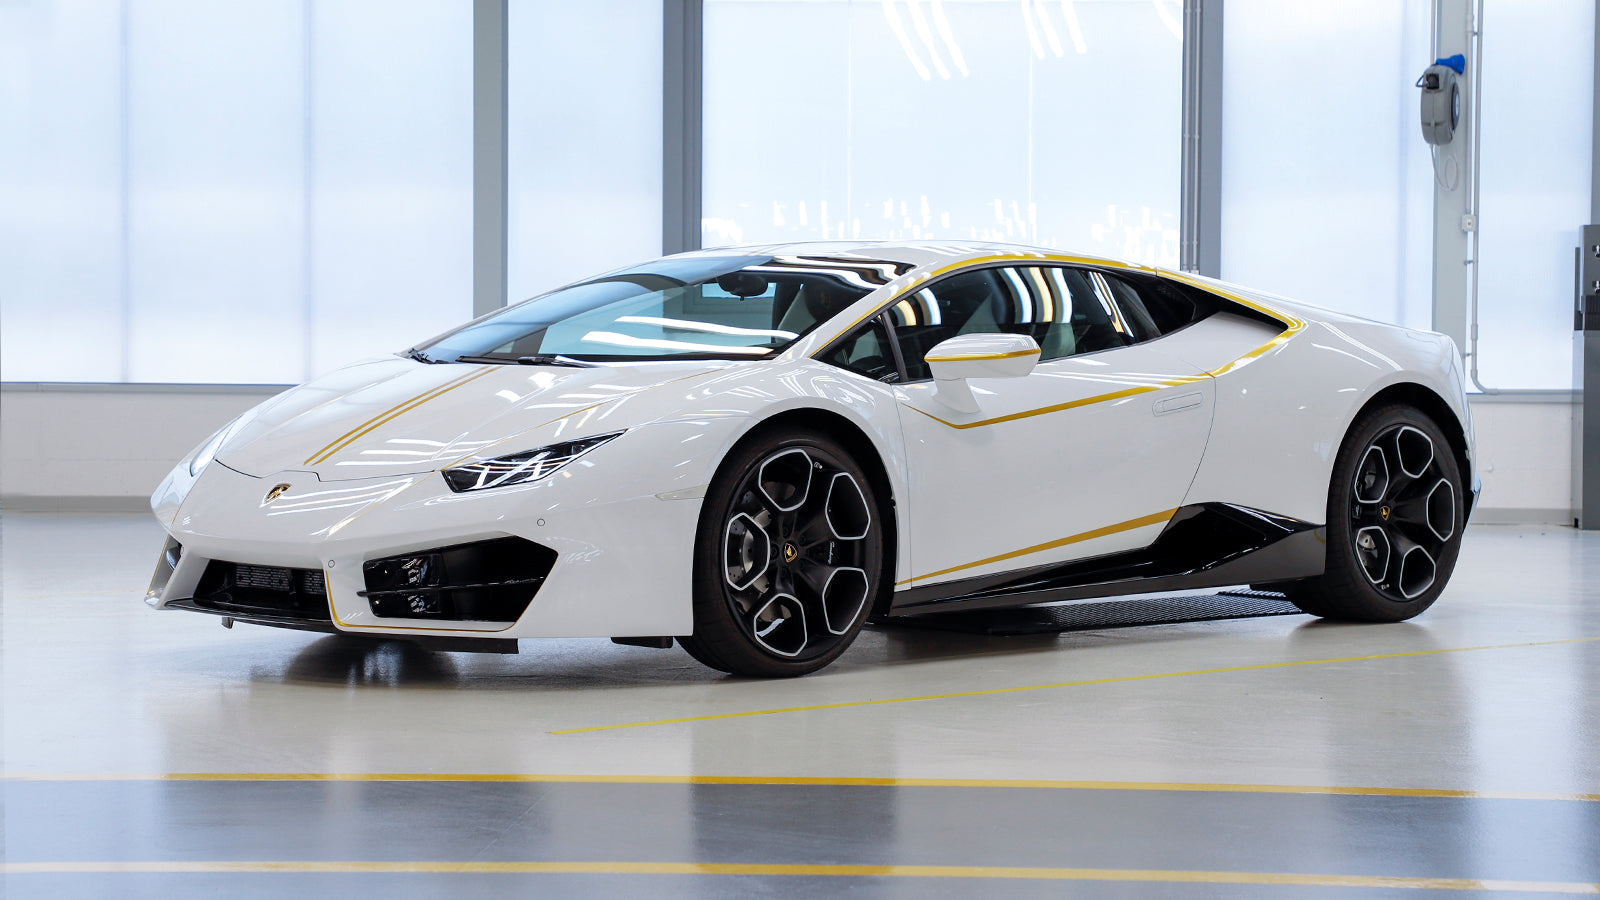 Win A One Of A Kind Lamborghini Blessed And Signed By Pope Francis